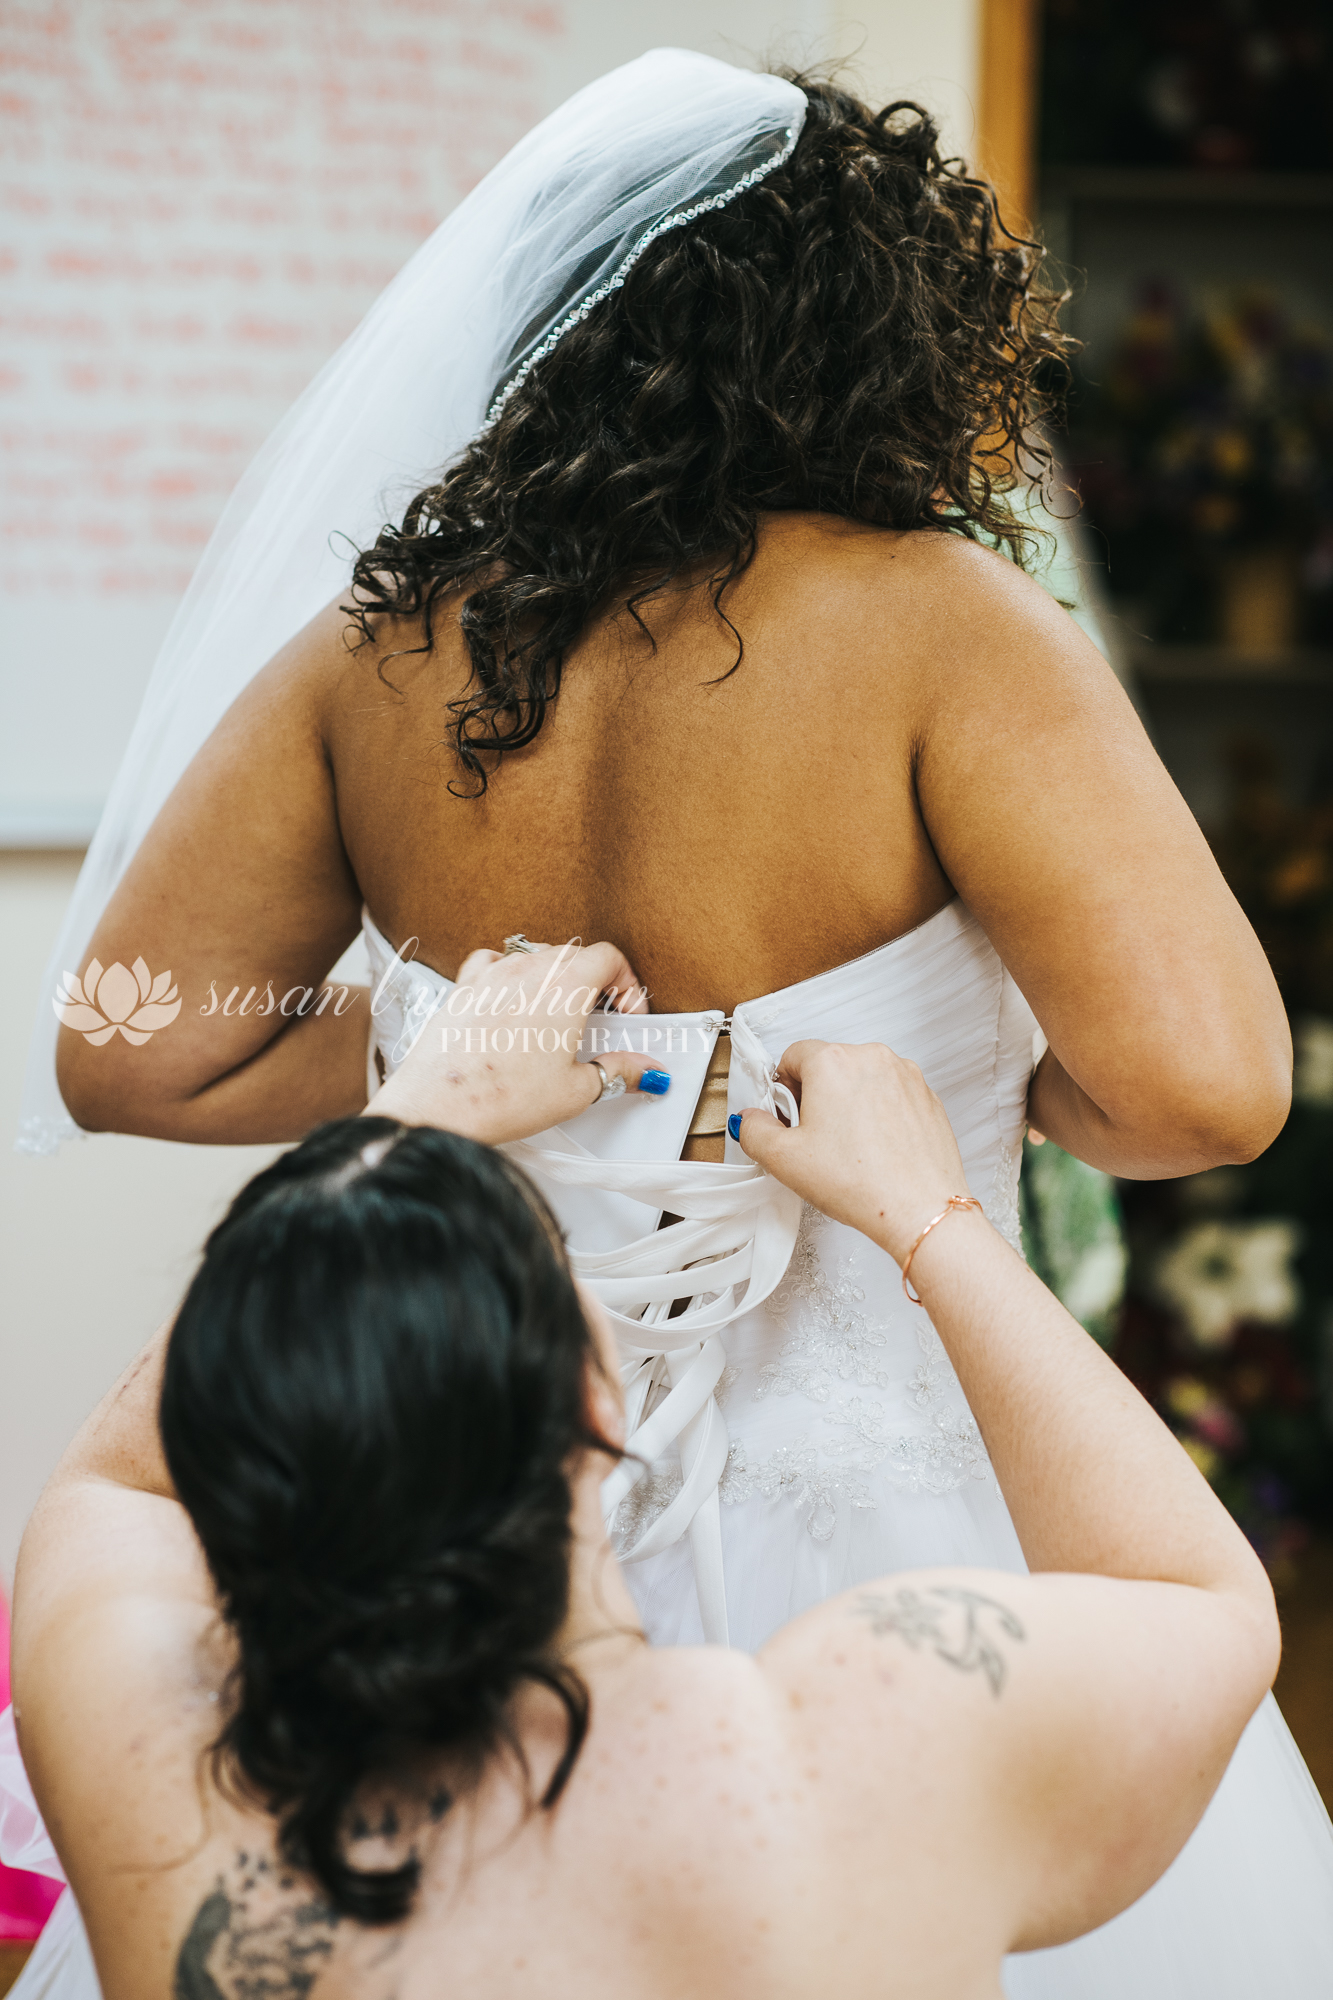 Katelyn and Wes Wedding Photos 07-13-2019 SLY Photography-7.jpg